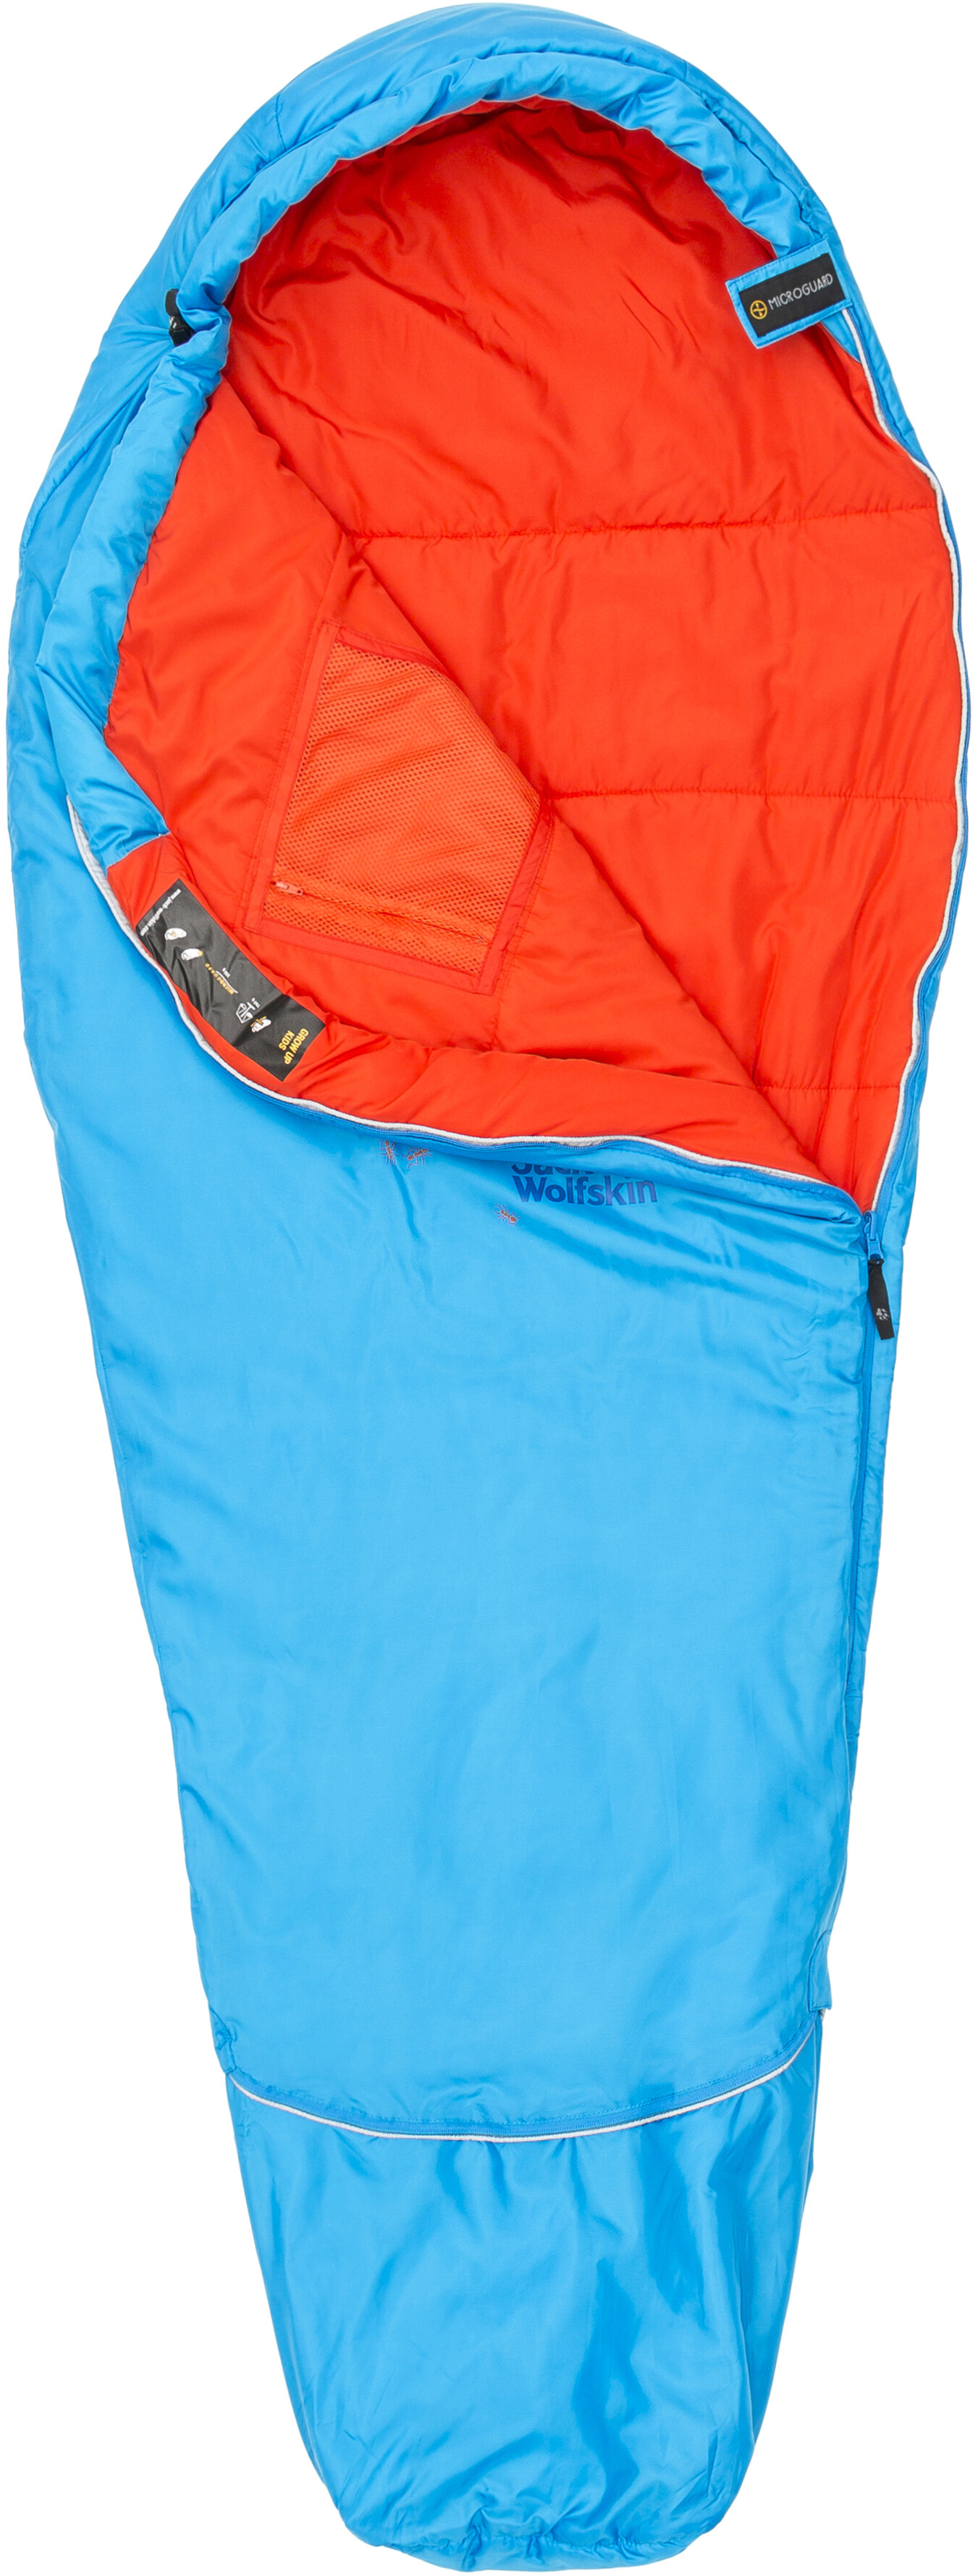 7e1dae47852 Jack Wolfskin Grow Up Sleeping Bag Children blue at Bikester.co.uk